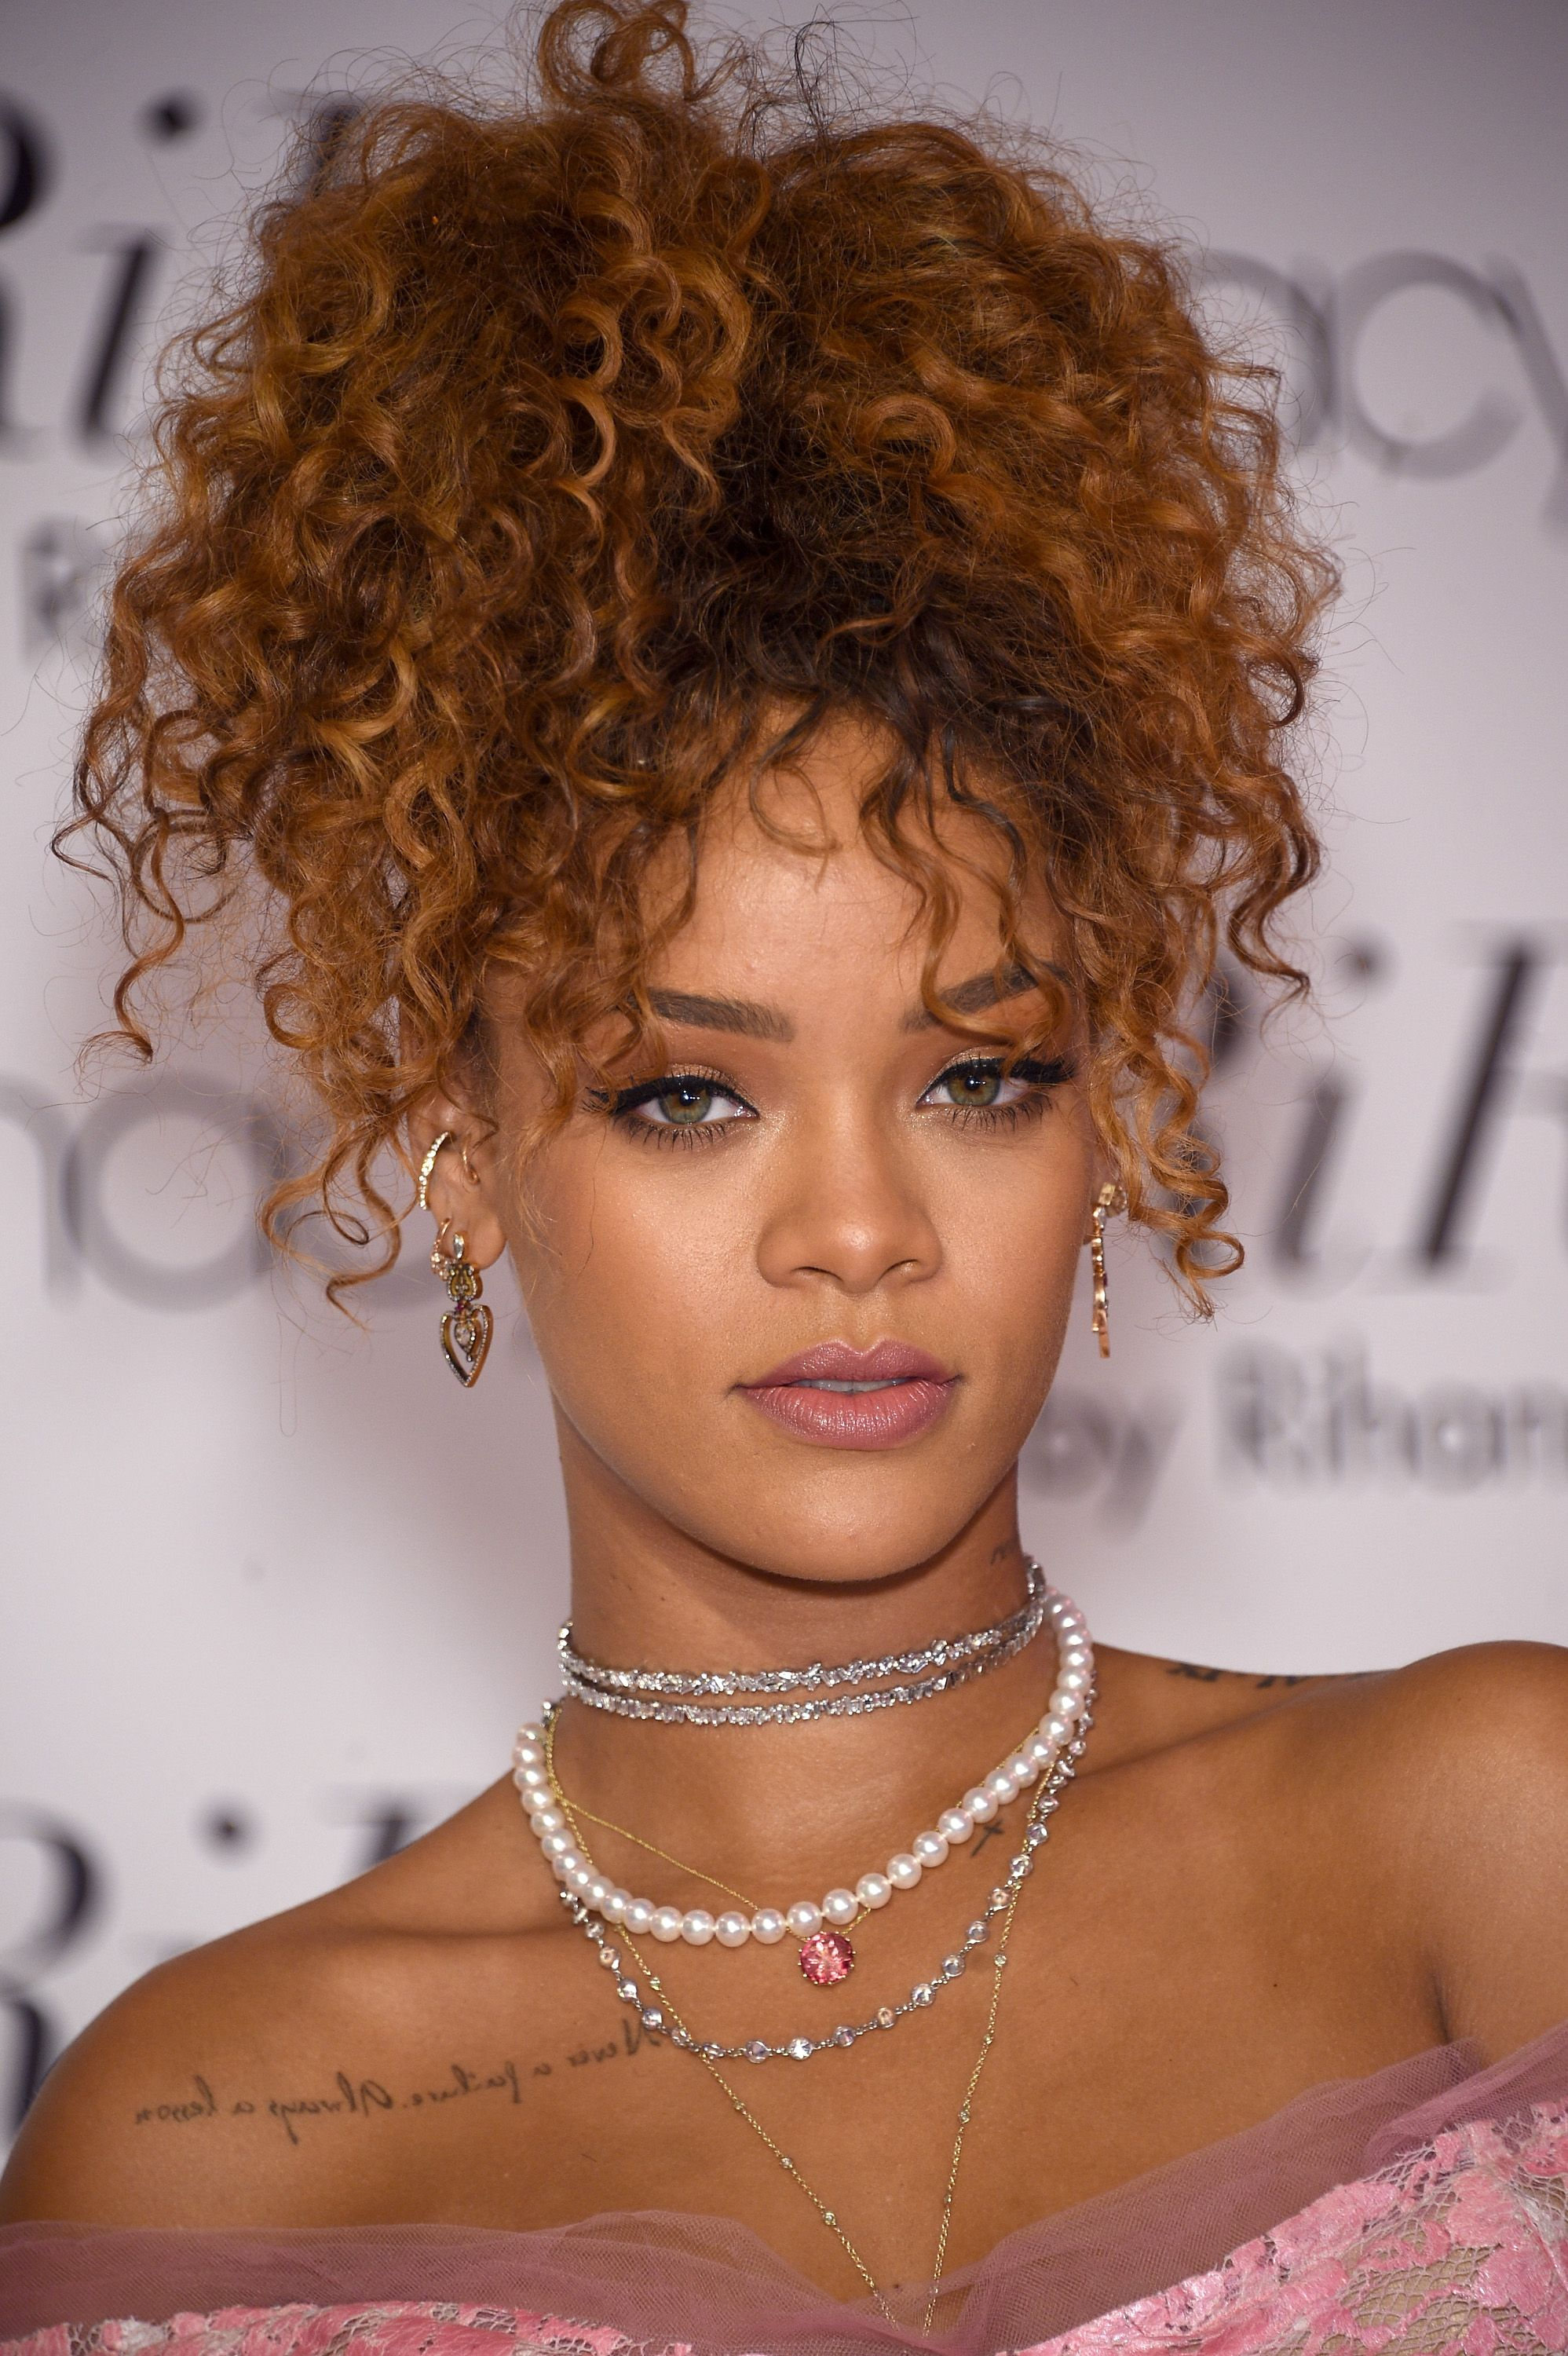 15 Best Short Curly Hairstyles - Haircuts for Short Curly Hair